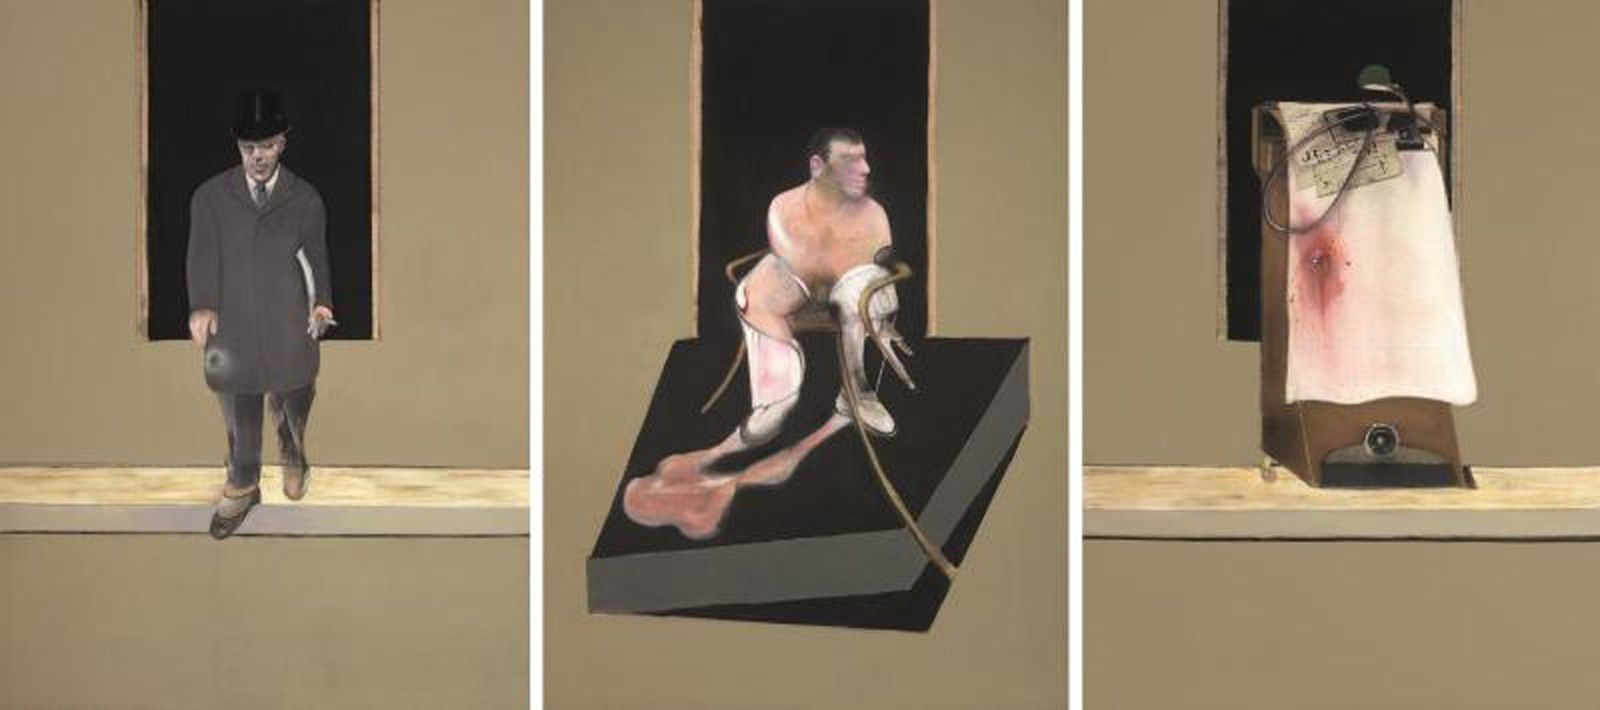 """Triptych 1986-7 CR87-01"", 1986-1987 de Francis BACON - Collection Privée, londres © the estate of Francis bacon /all rights reserved / adagp, paris and dacs, london 2019 © the estate of Francis bacon. all rights reserved. dacs/artimage 2019. photo: prudence cuming associates ltd"